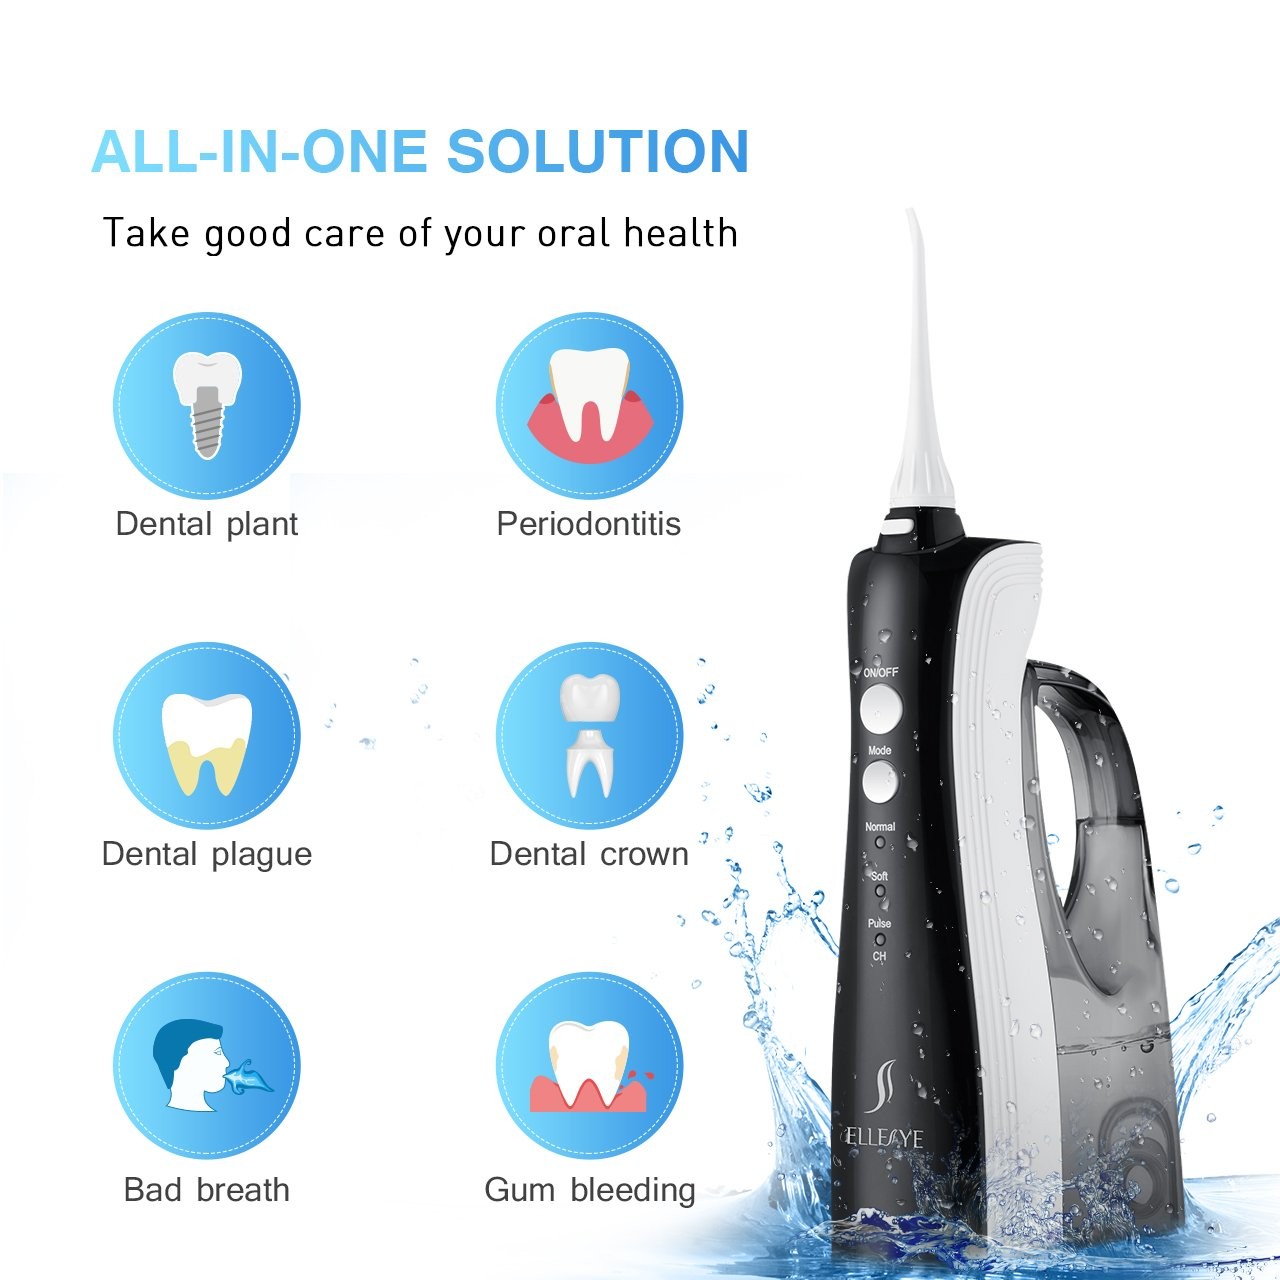 [UPGRADED] 330ML Cordless Water Flosser Teeth Cleaner, ELLESYE High Pulse Rechargeable Portable Oral Irrigator for Travel & Office Use, IPX7 Waterproof Dental Flosser for Shower with 2 Tips for Family by ELLESYE (Image #8)